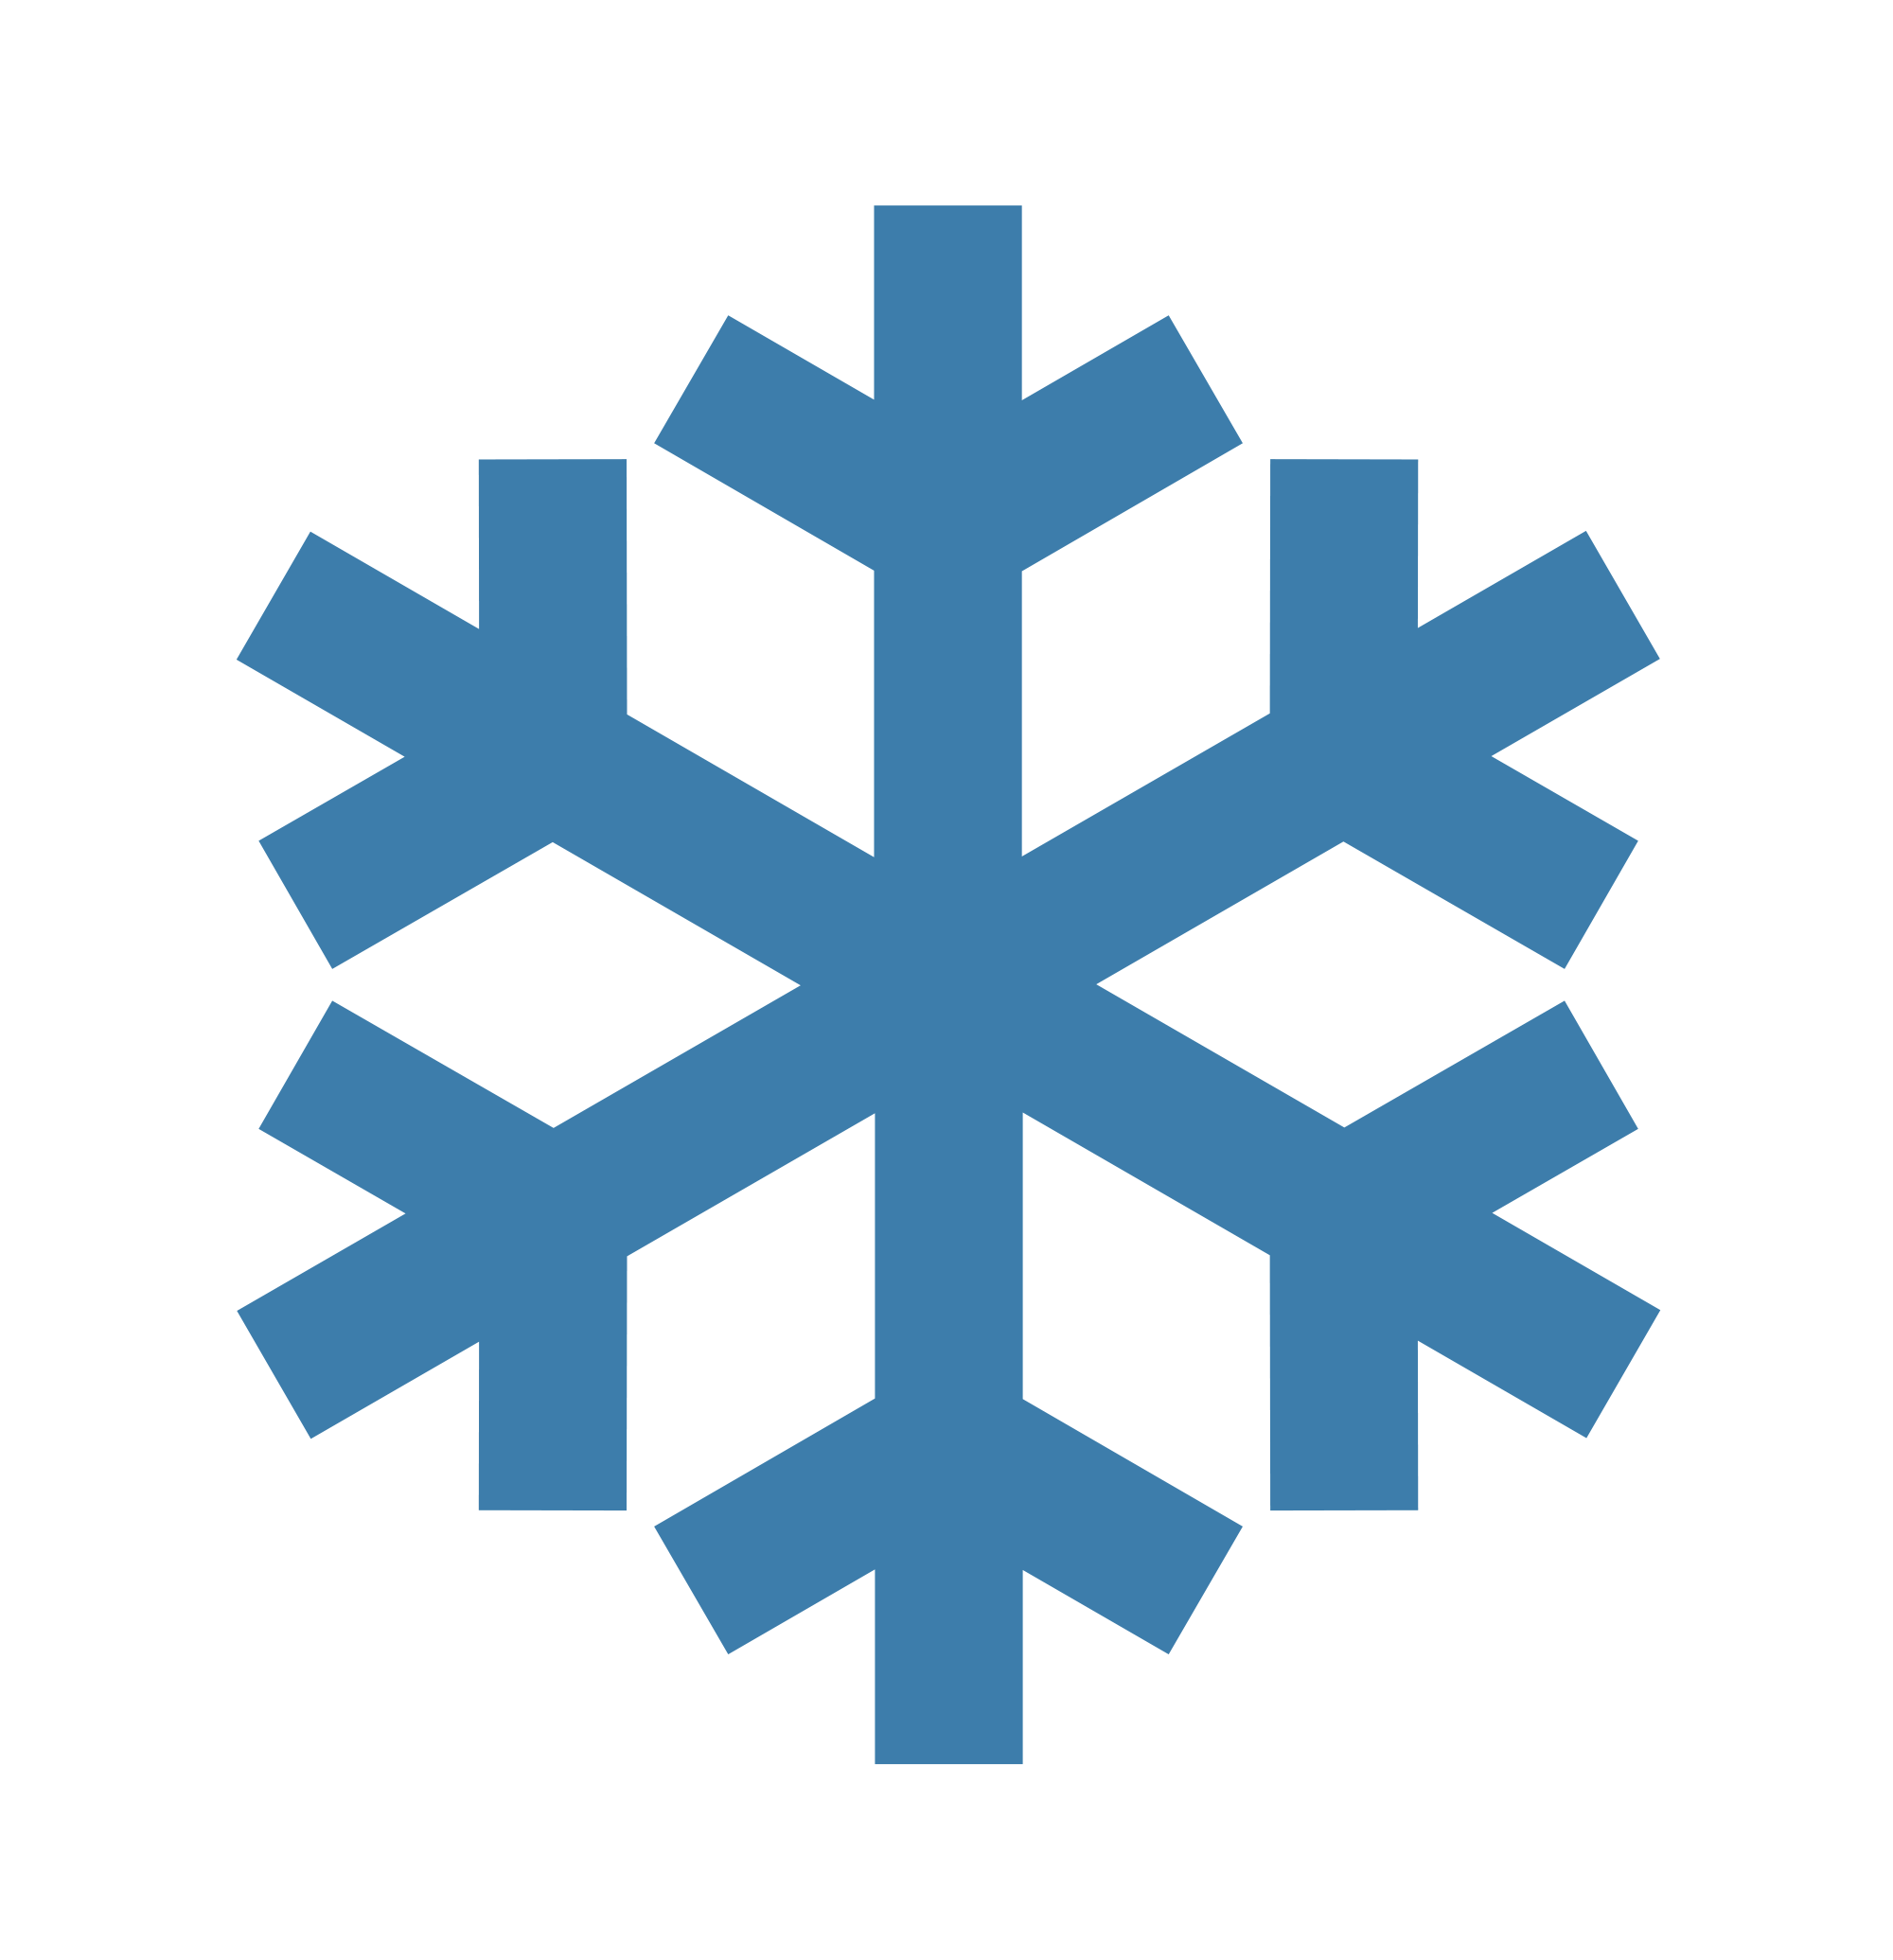 Snow svg. File flake wikimedia commons